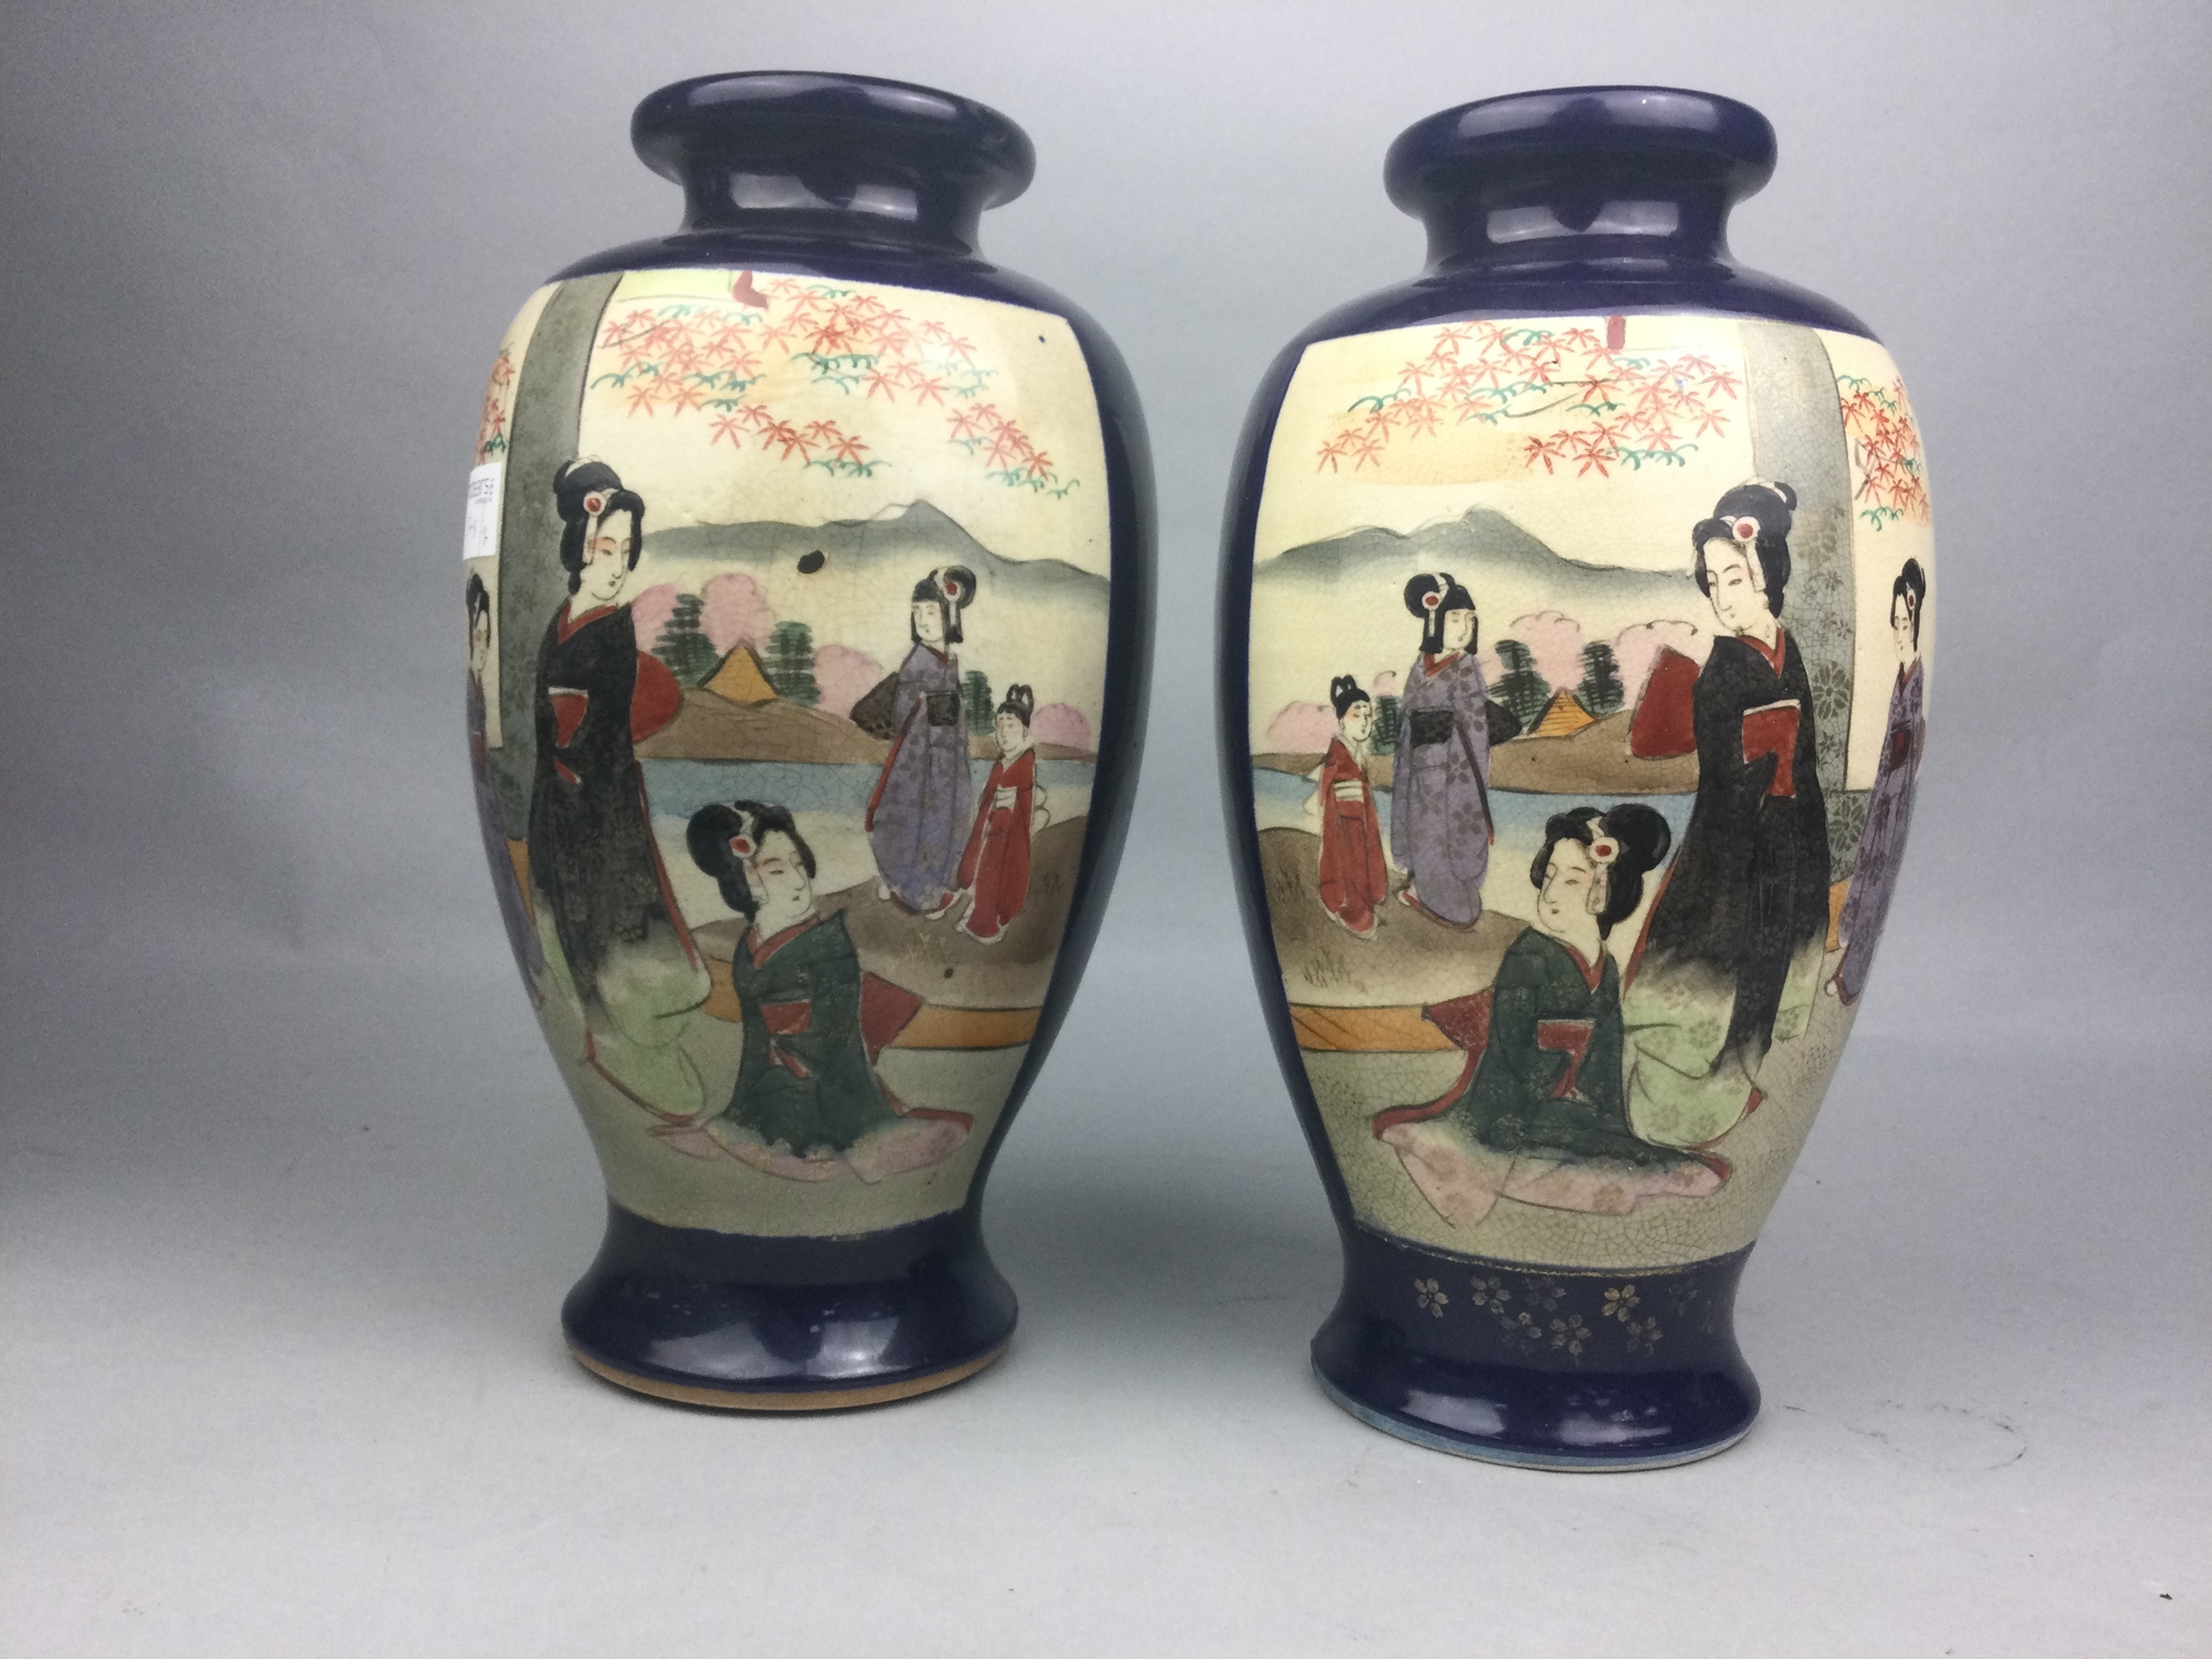 A PAIR OF JAPANESE BALUSTER VASES